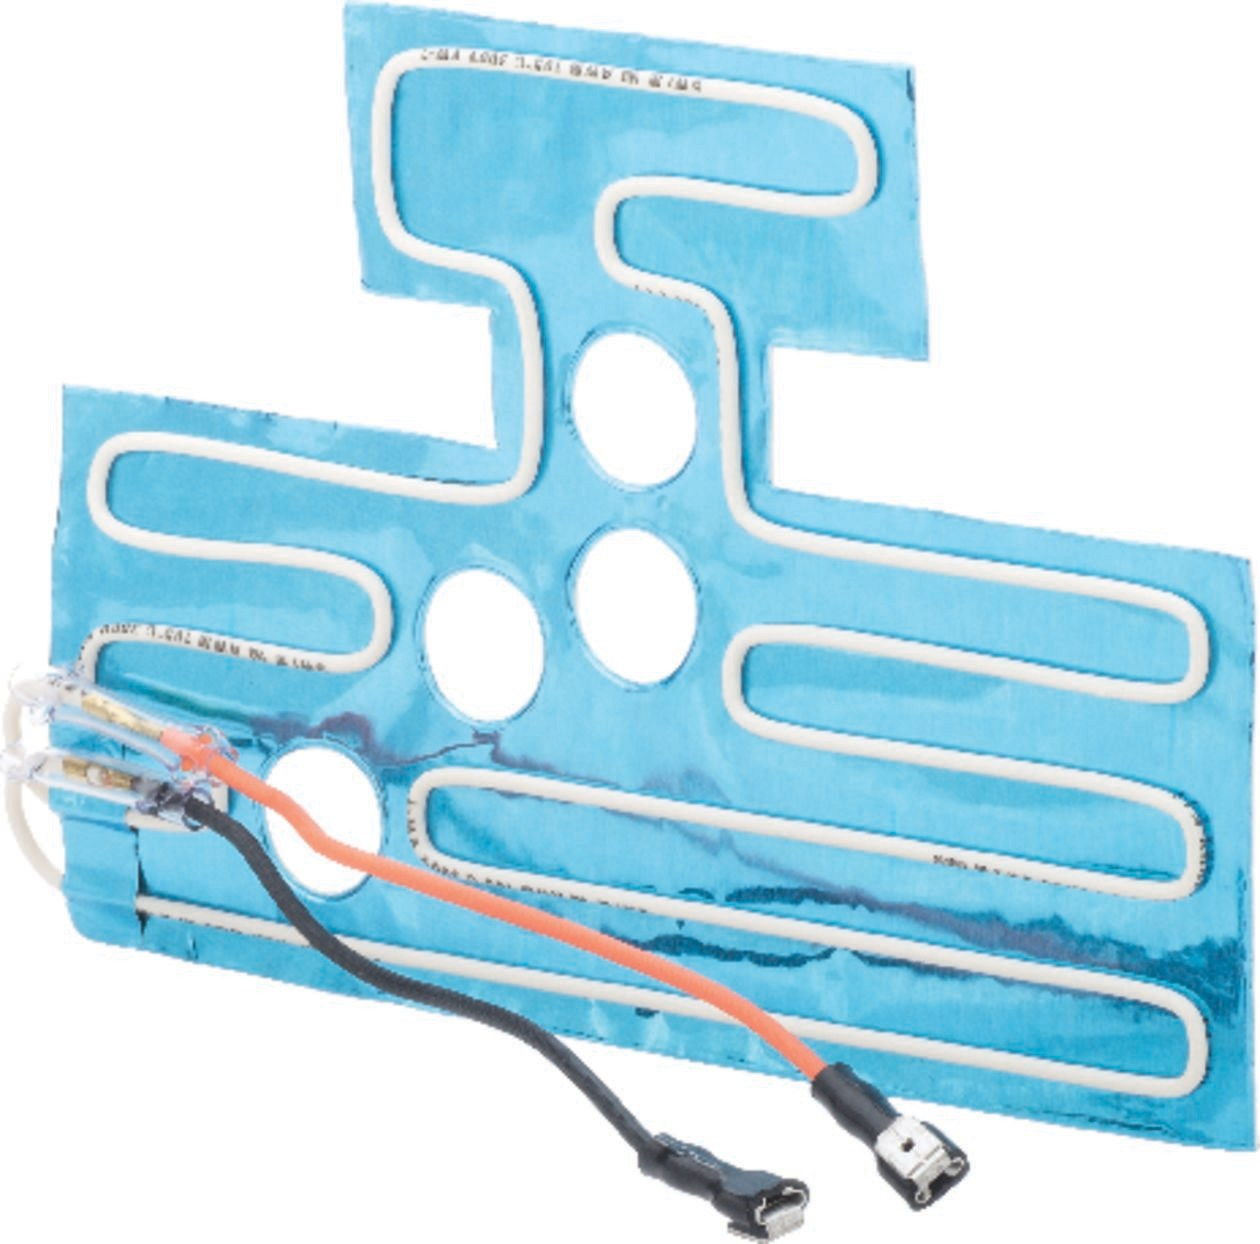 Multi-Brand Garage Installation Kit for Low Ambient Temperature